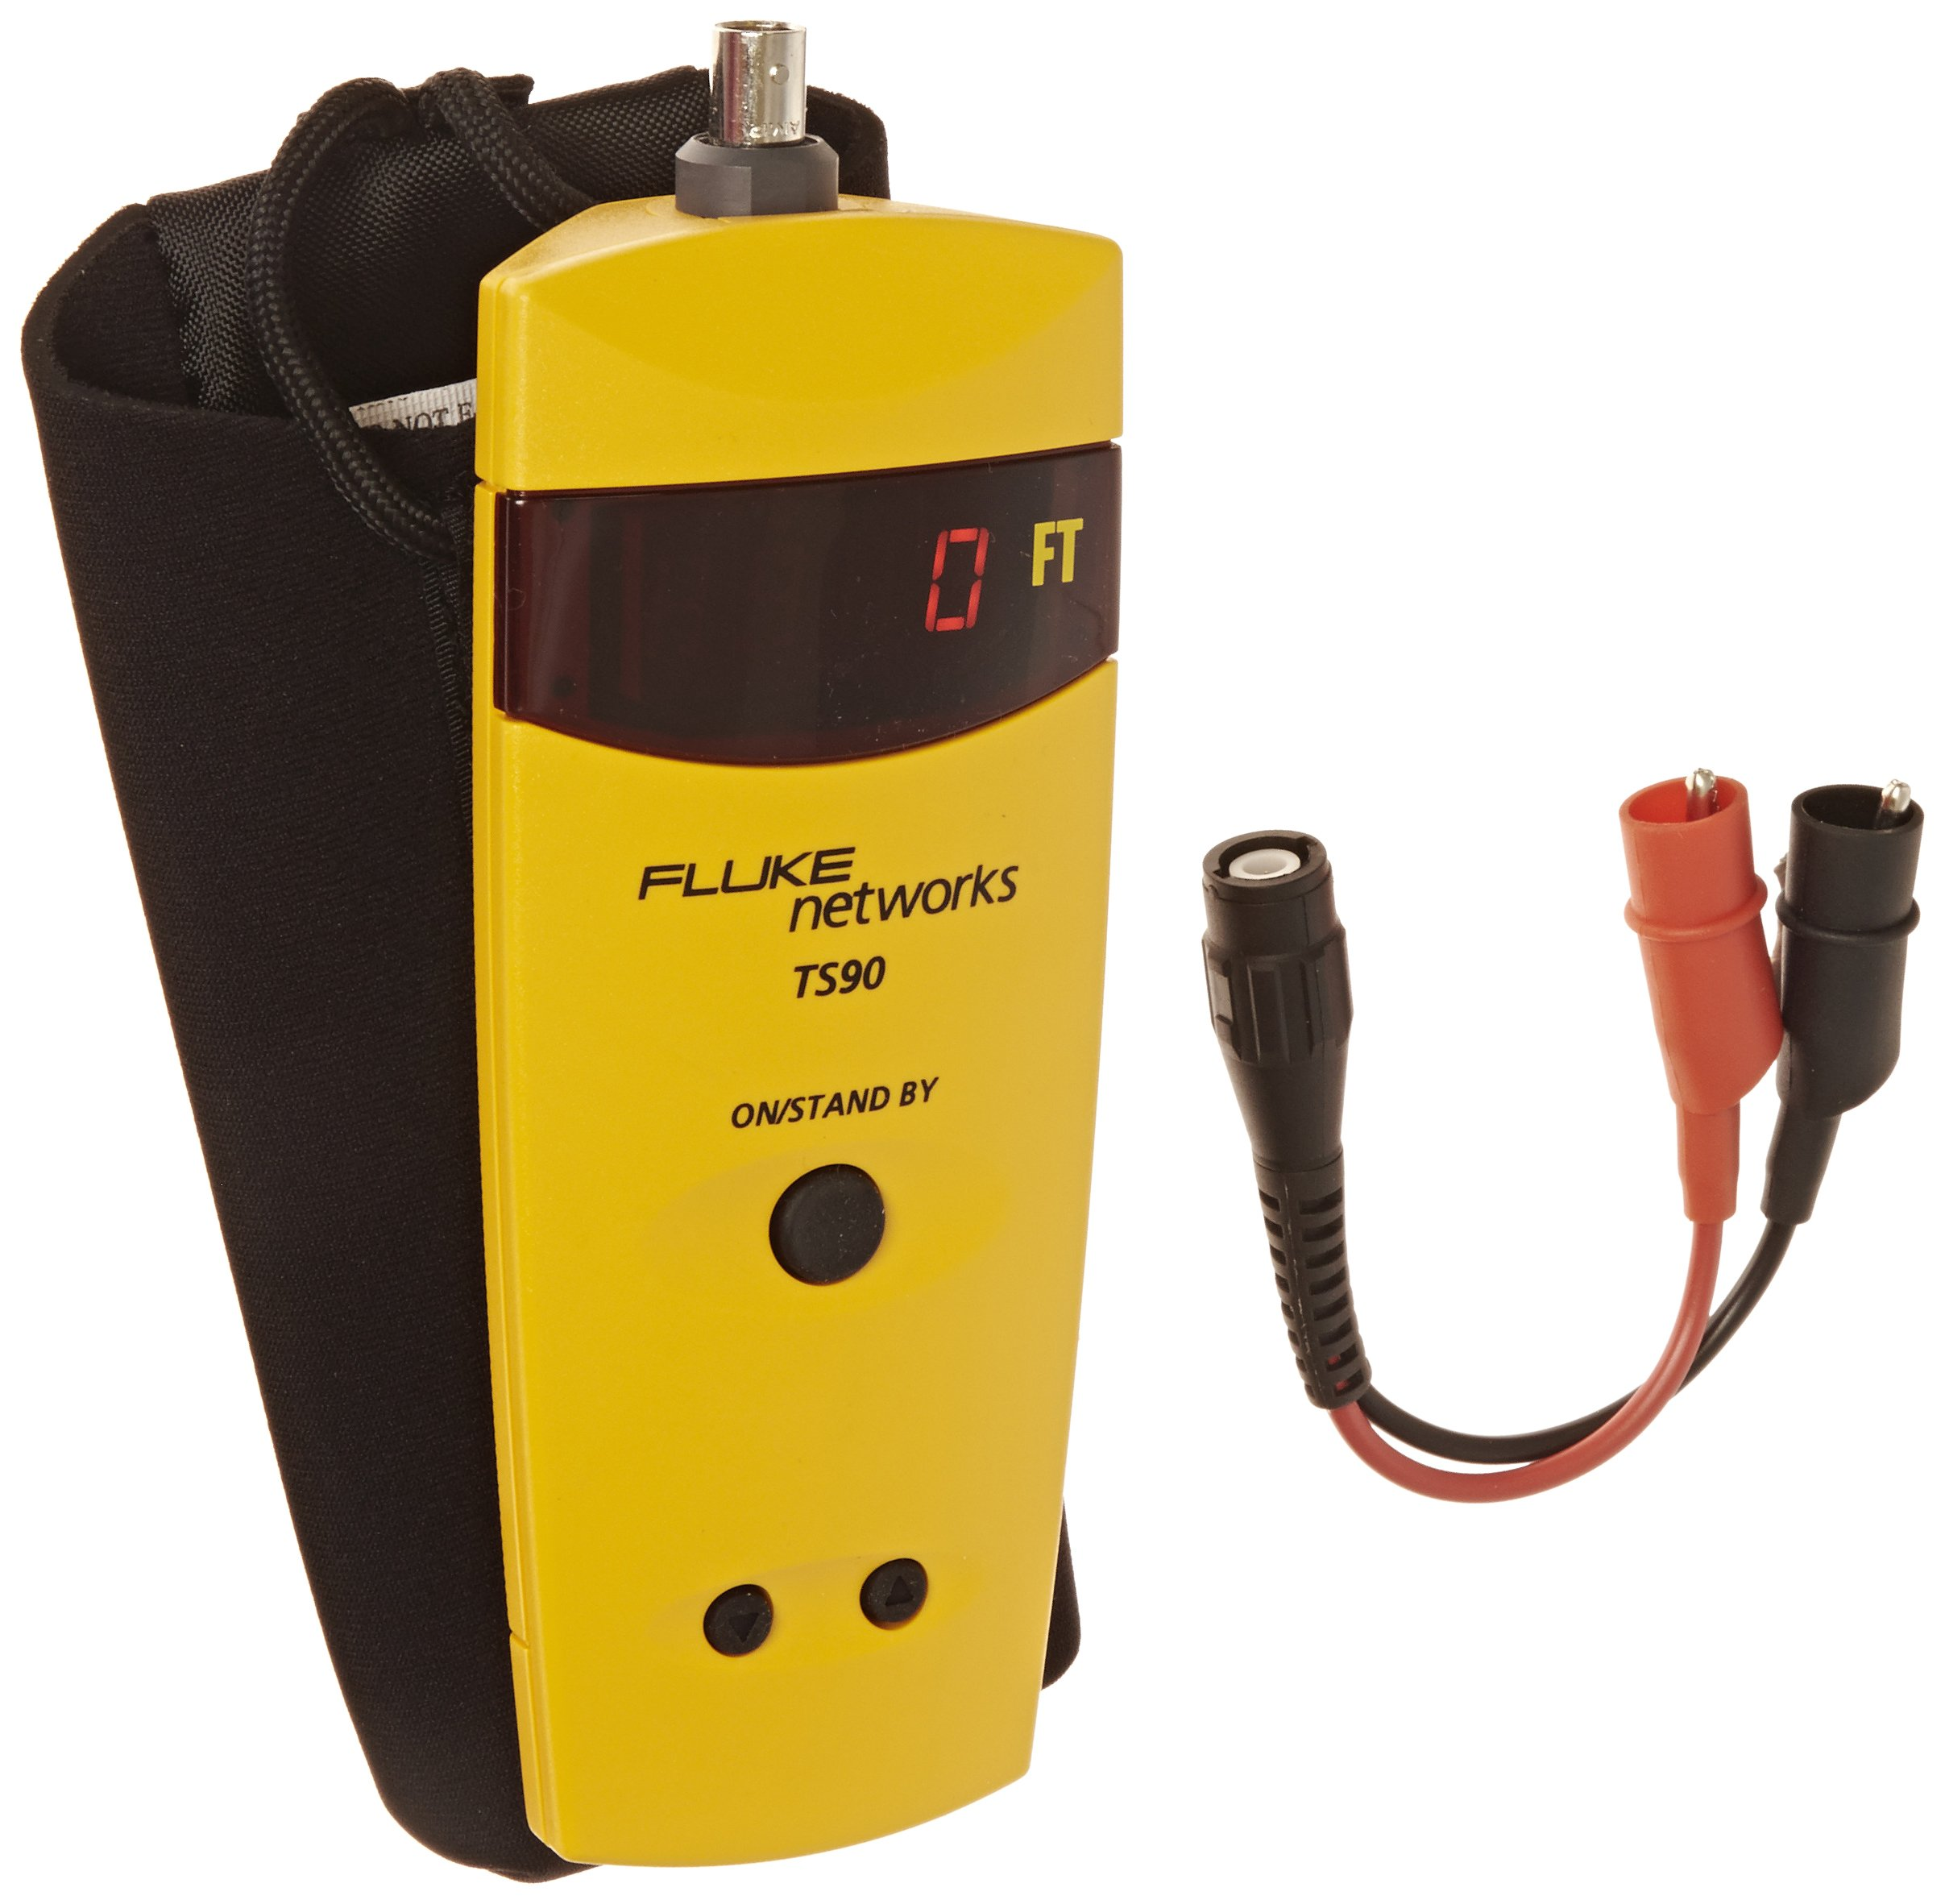 Fluke Networks 26500090 TS90 Cable Fault Finder with BNC to Alligator Clips by Fluke Networks (Image #1)